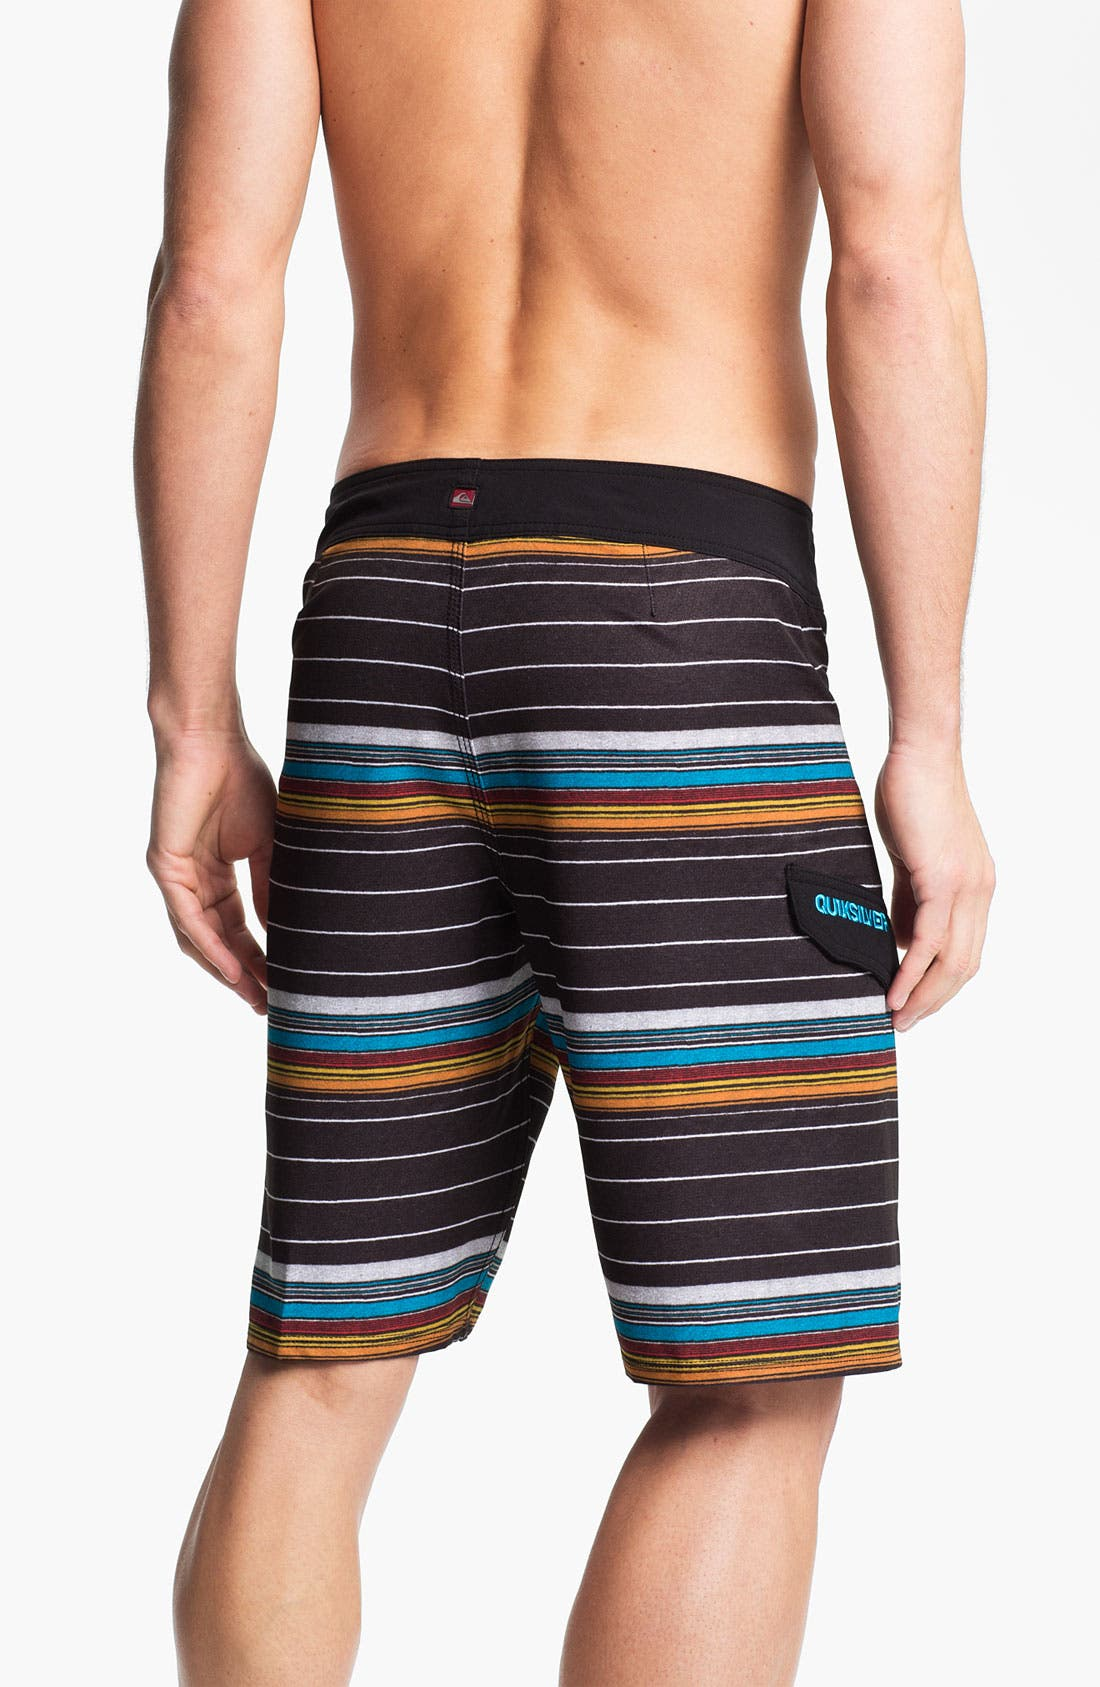 Alternate Image 2  - Quiksilver 'Suit Up' Board Shorts (Online Exclusive)